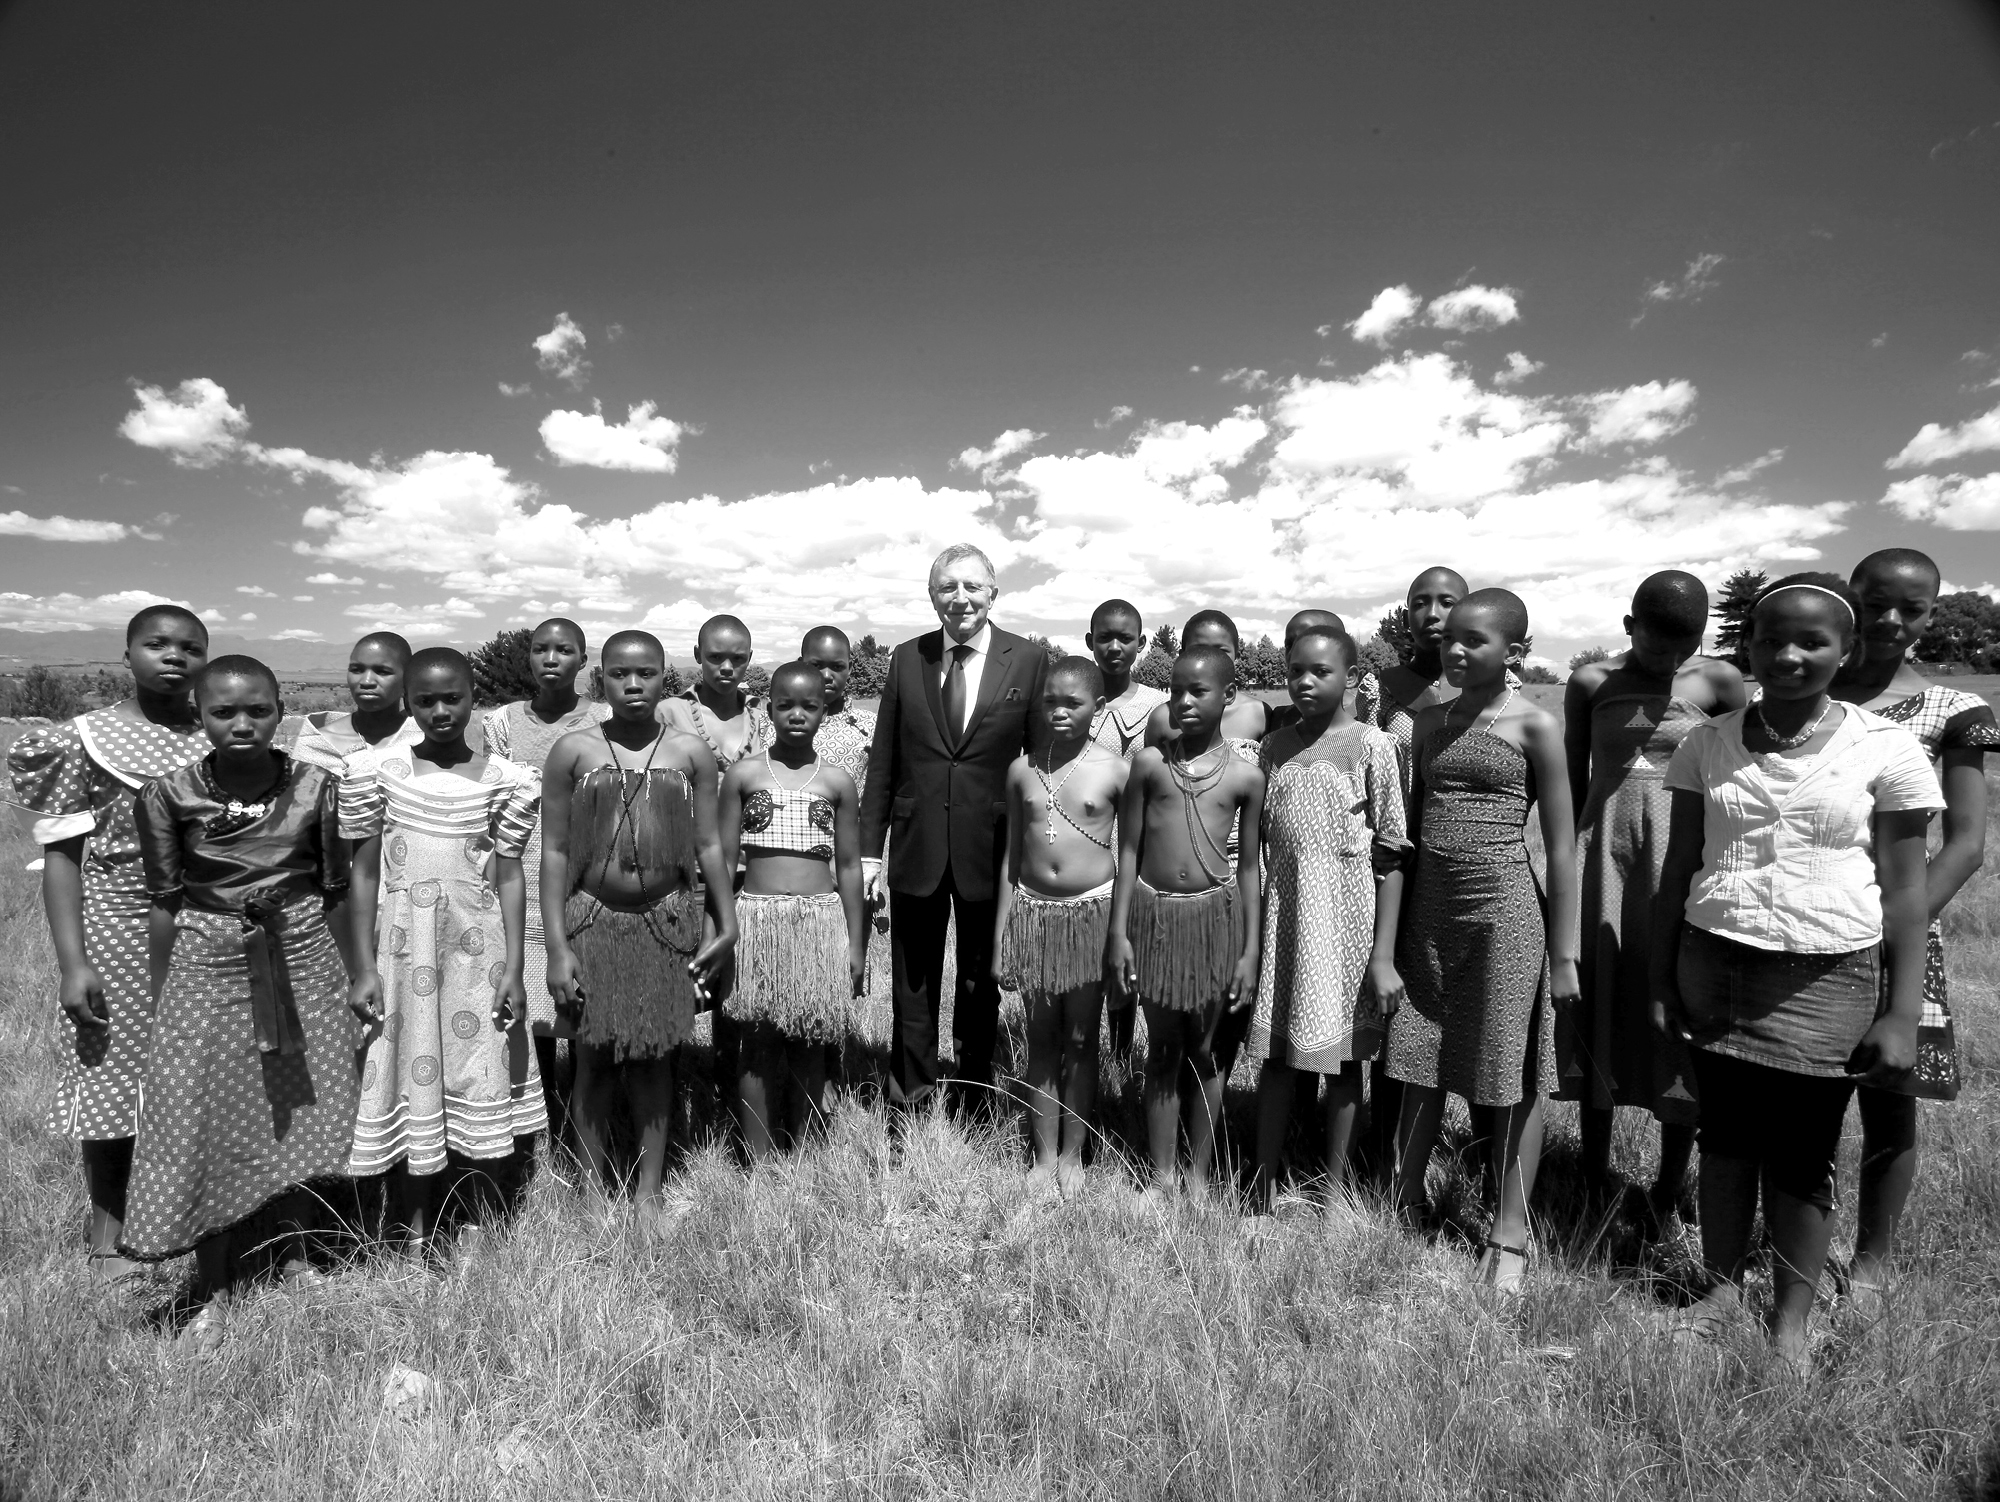 Graff supports African communities